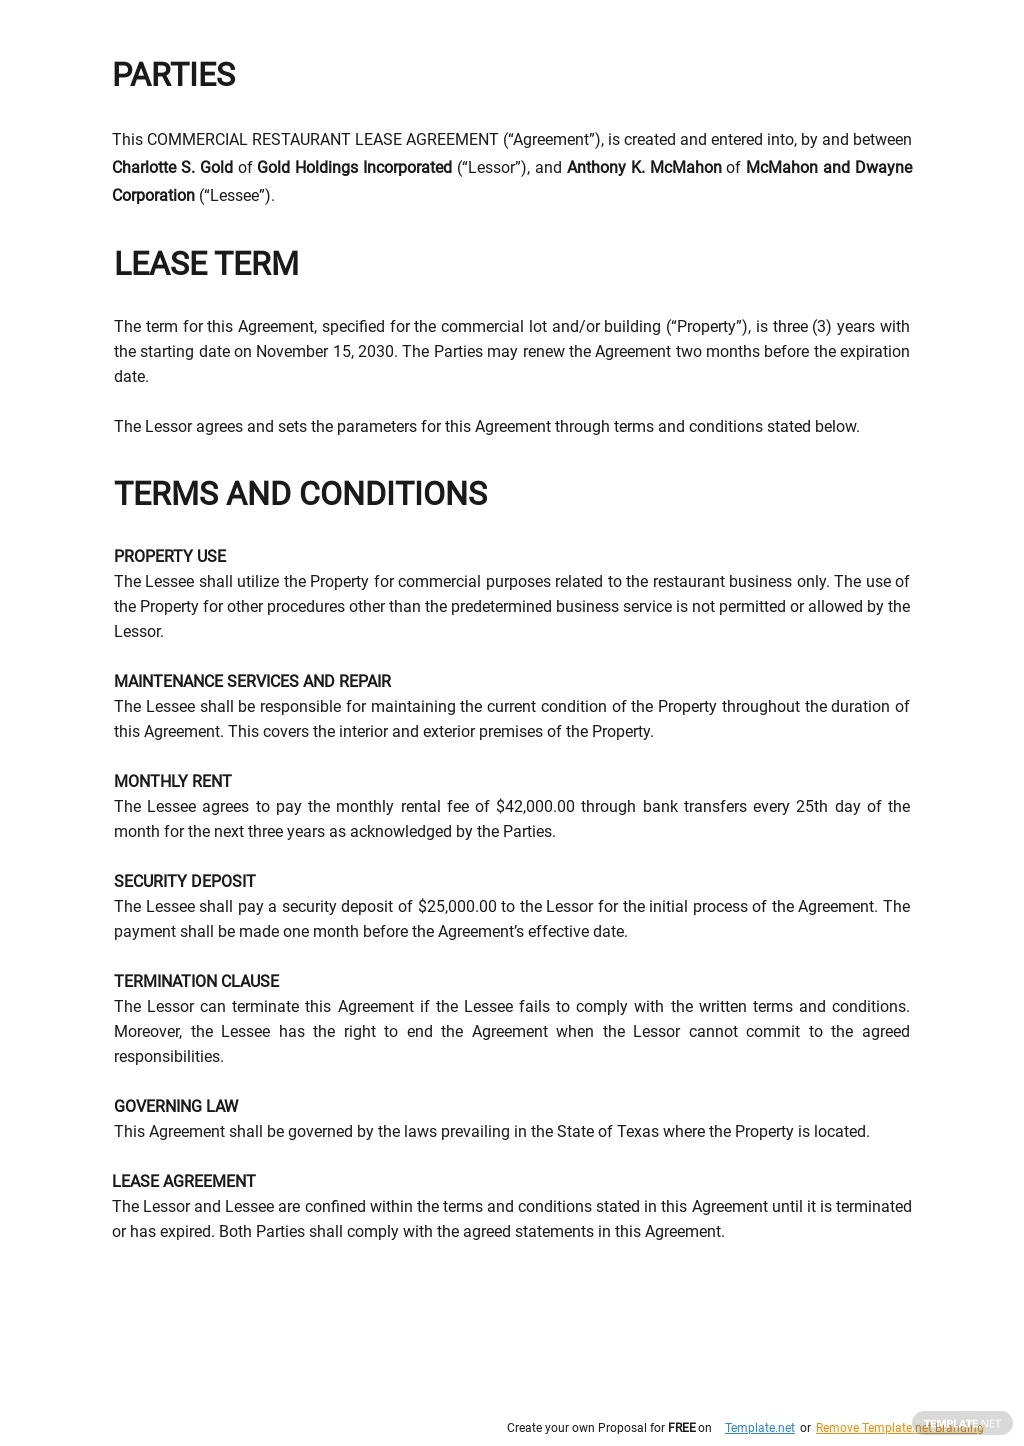 Commercial Restaurant Lease Agreement Template 1.jpe